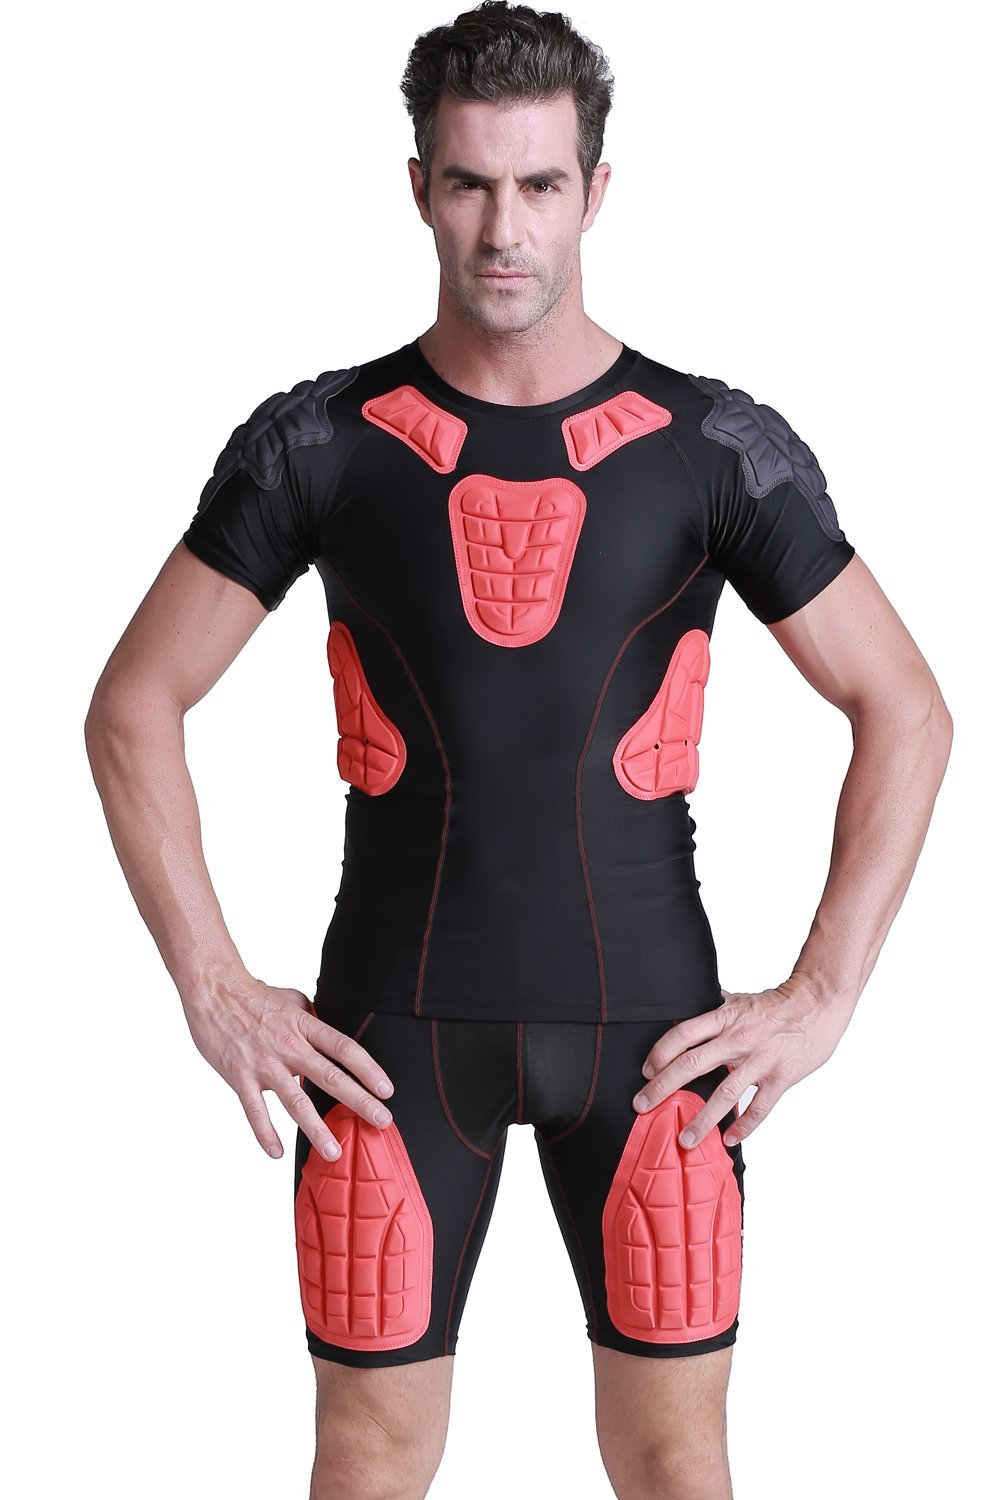 TUOY Men's Boys Padded Compression Shirt Rib Protector for Football Paintbal by TUOY